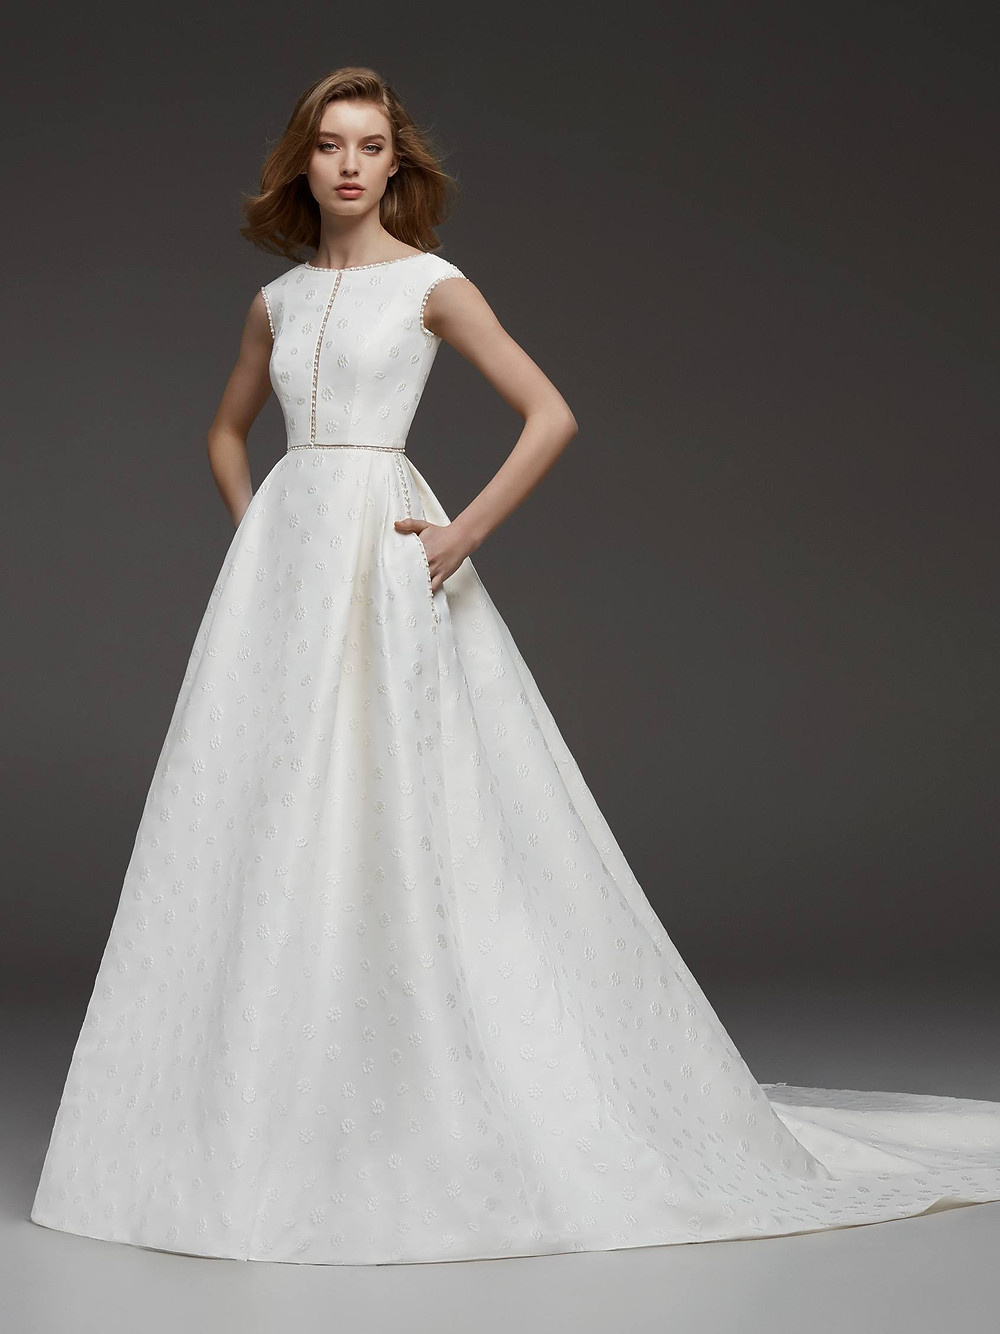 A Pronovias simple crepe ball gown wedding dress with pockets